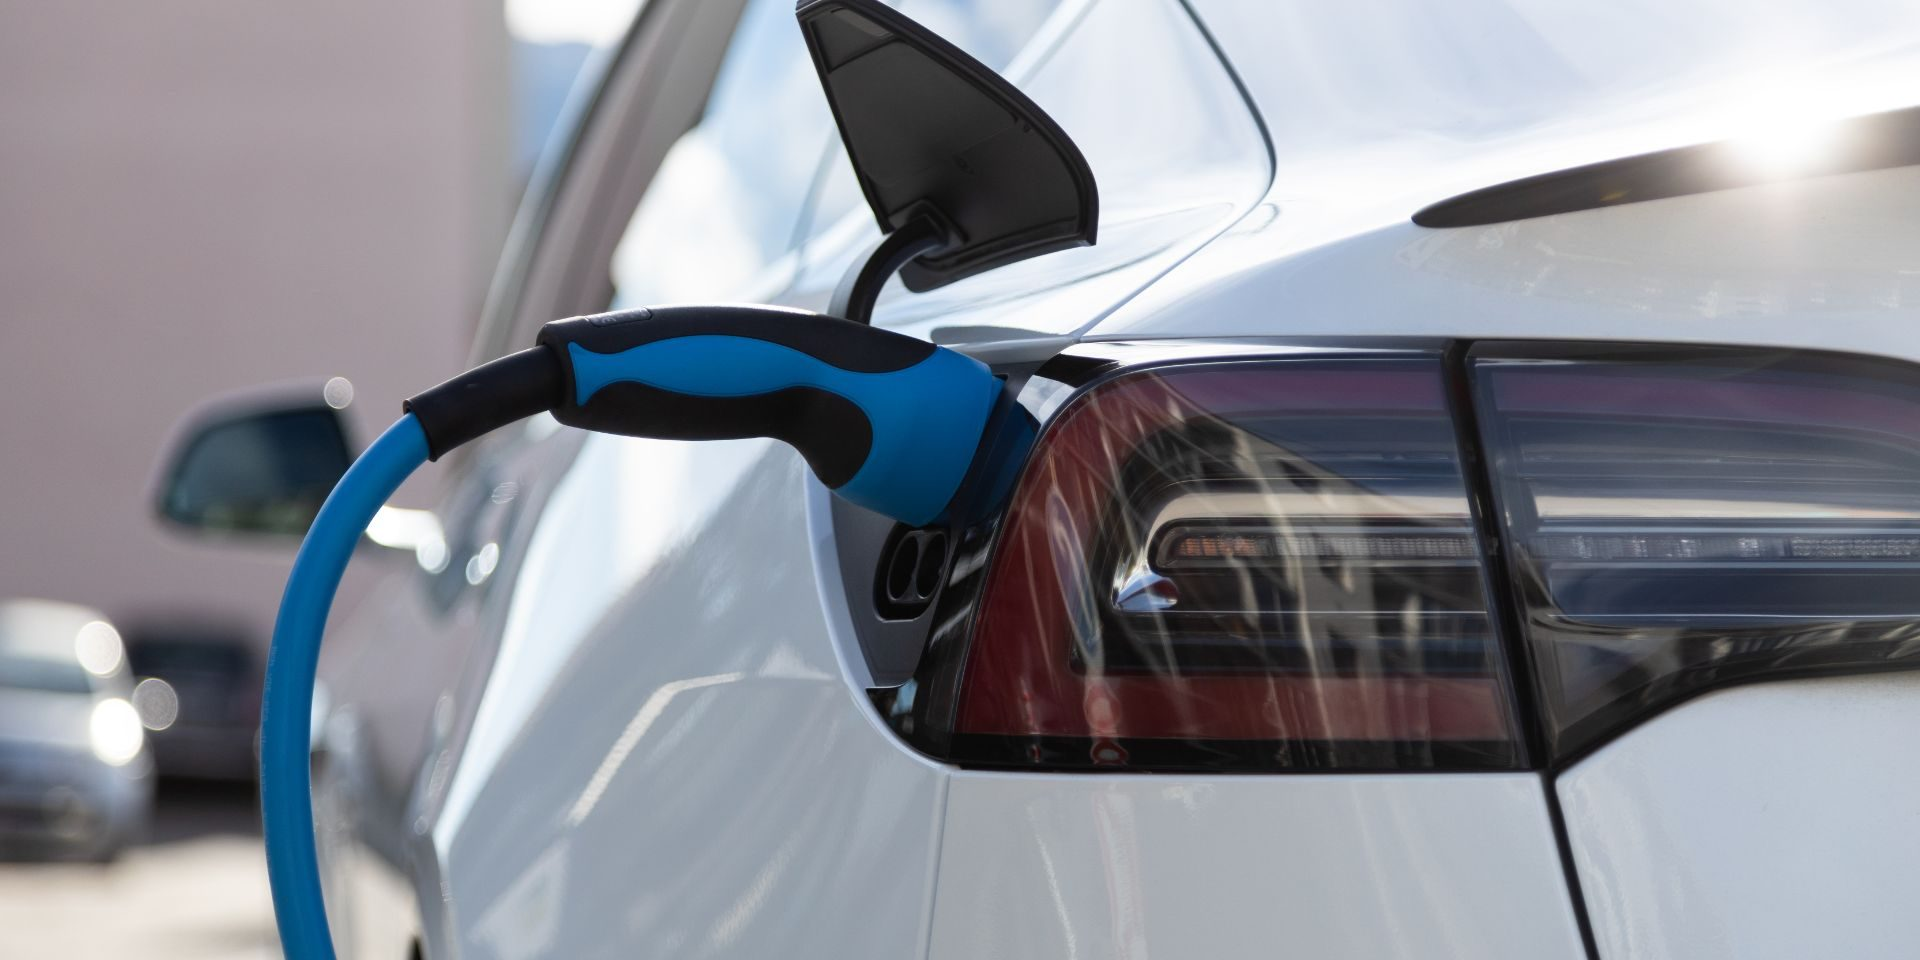 ev-electric-car-pluged-charging-at-a-recharge-stat-C9MCD4W